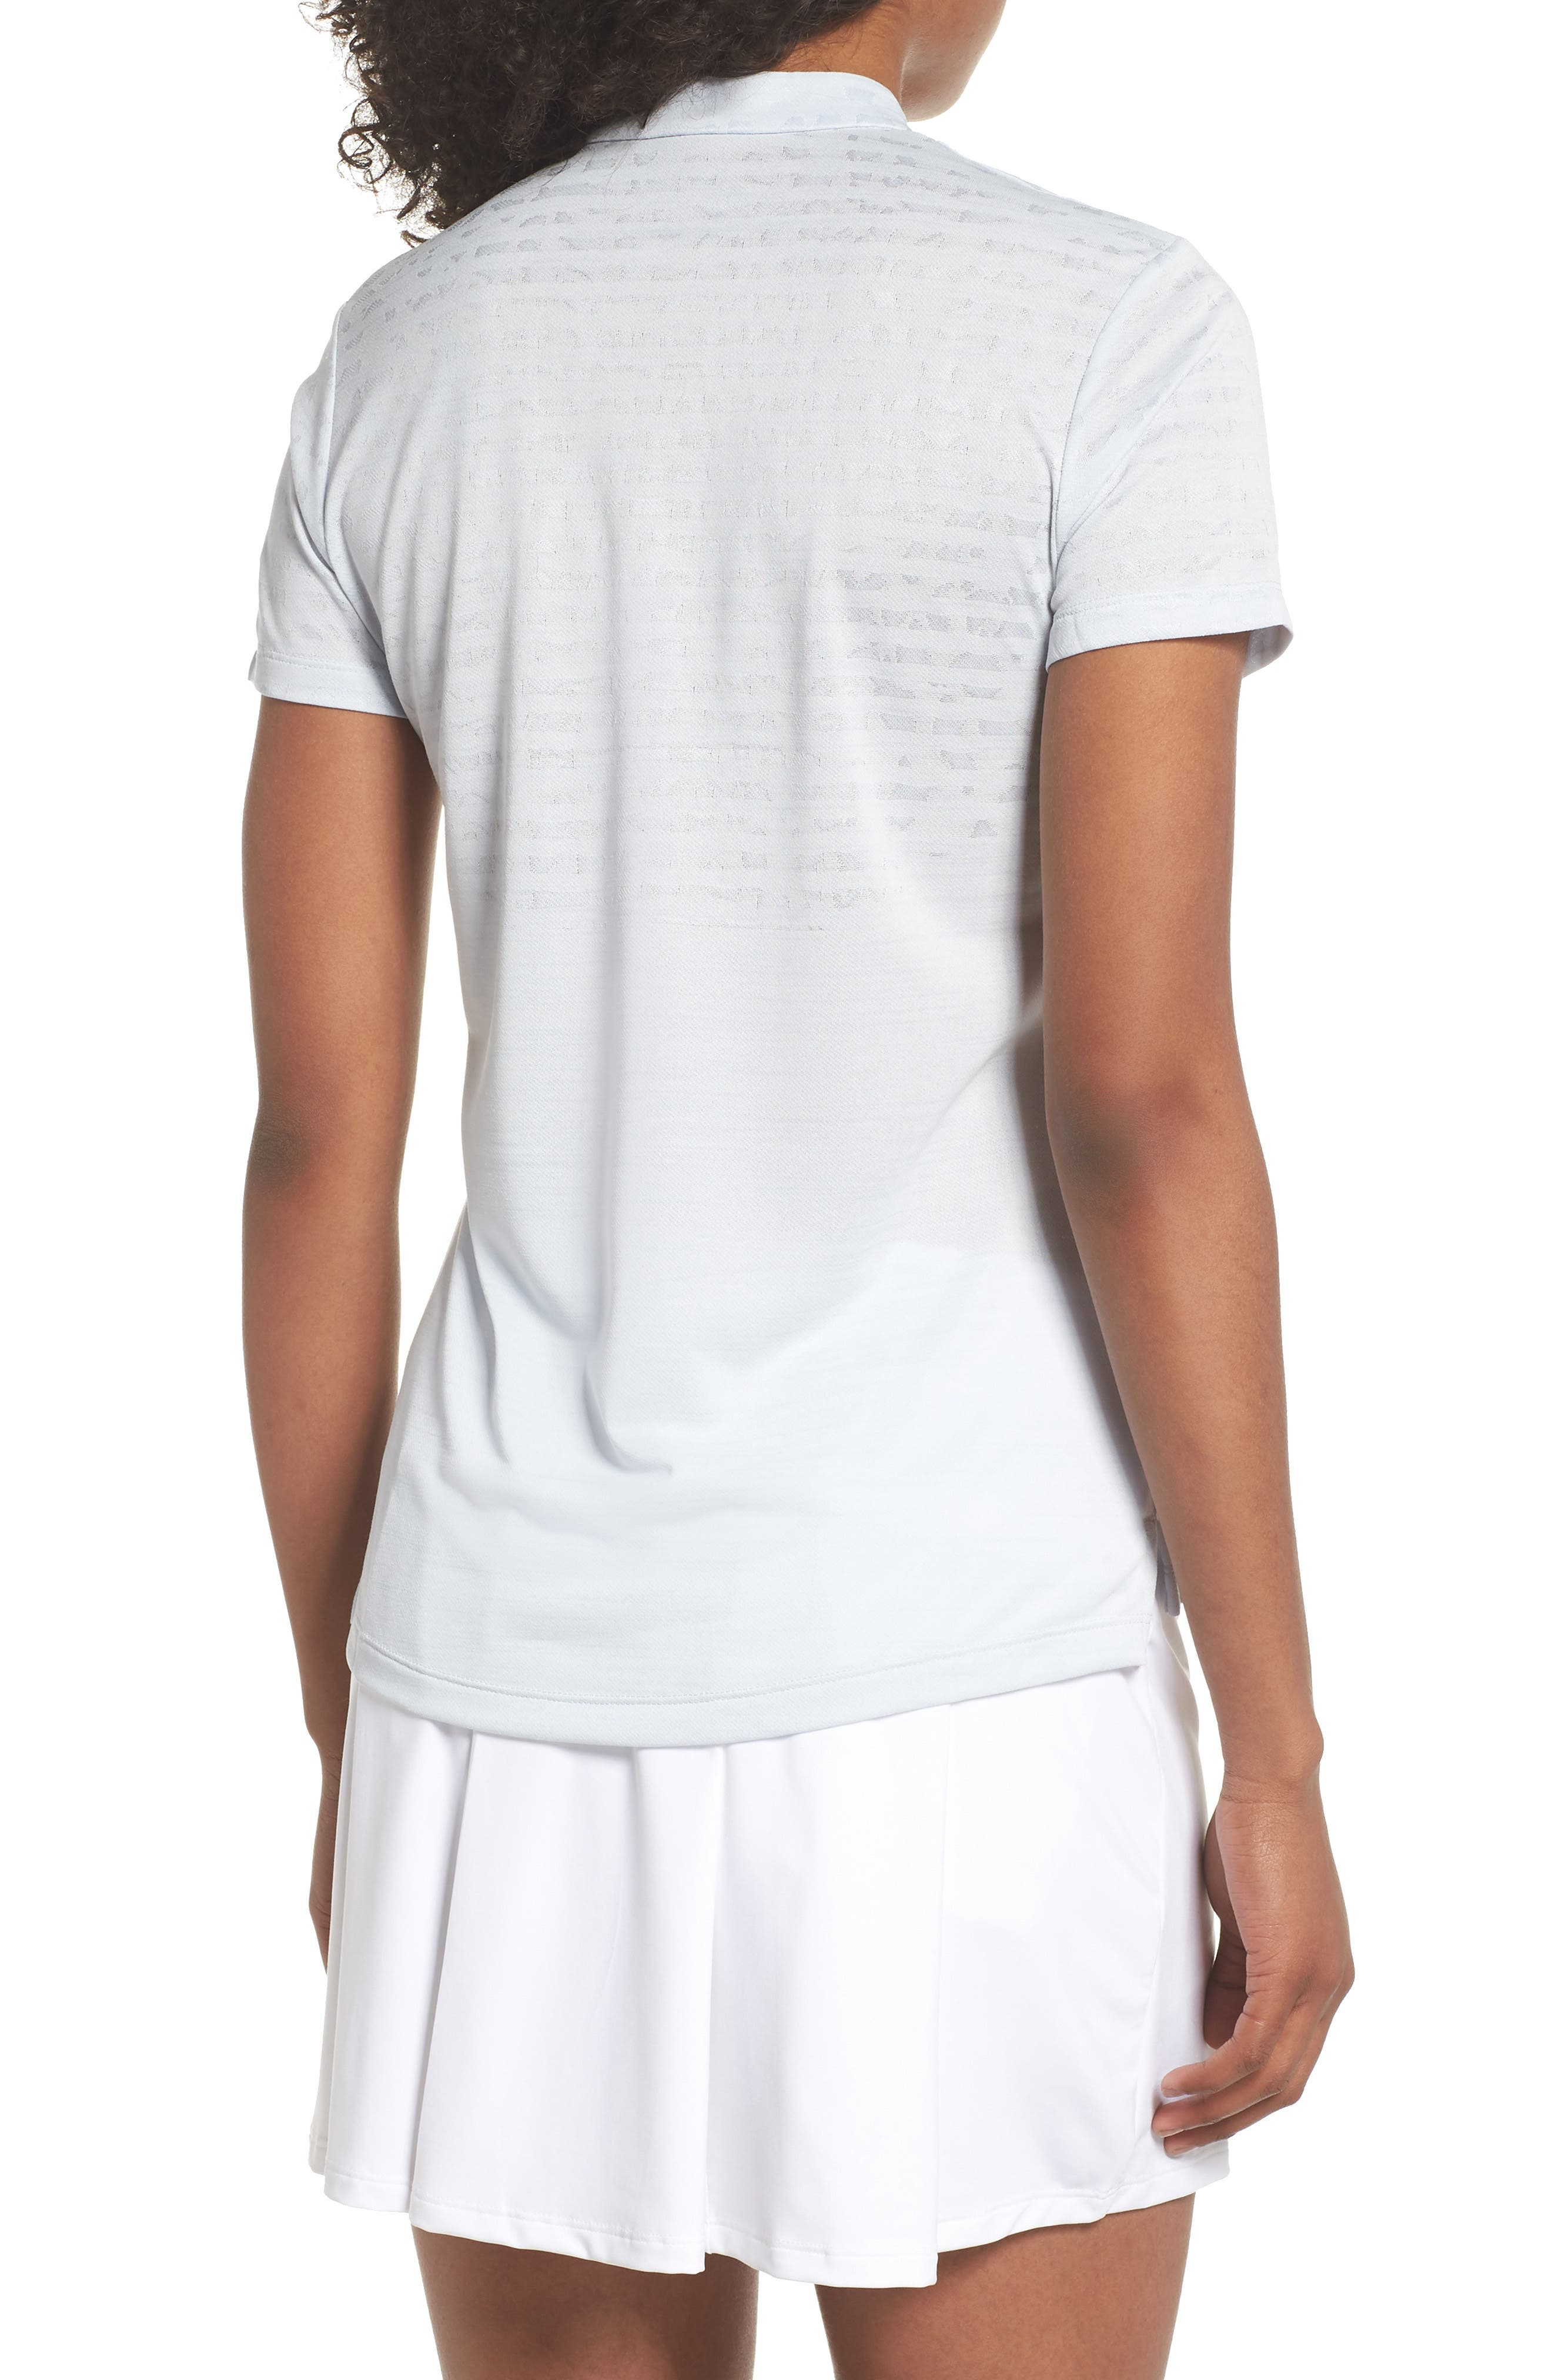 Zonal Cooling Golf Polo,                             Alternate thumbnail 2, color,                             Pure Platinum/ Silver